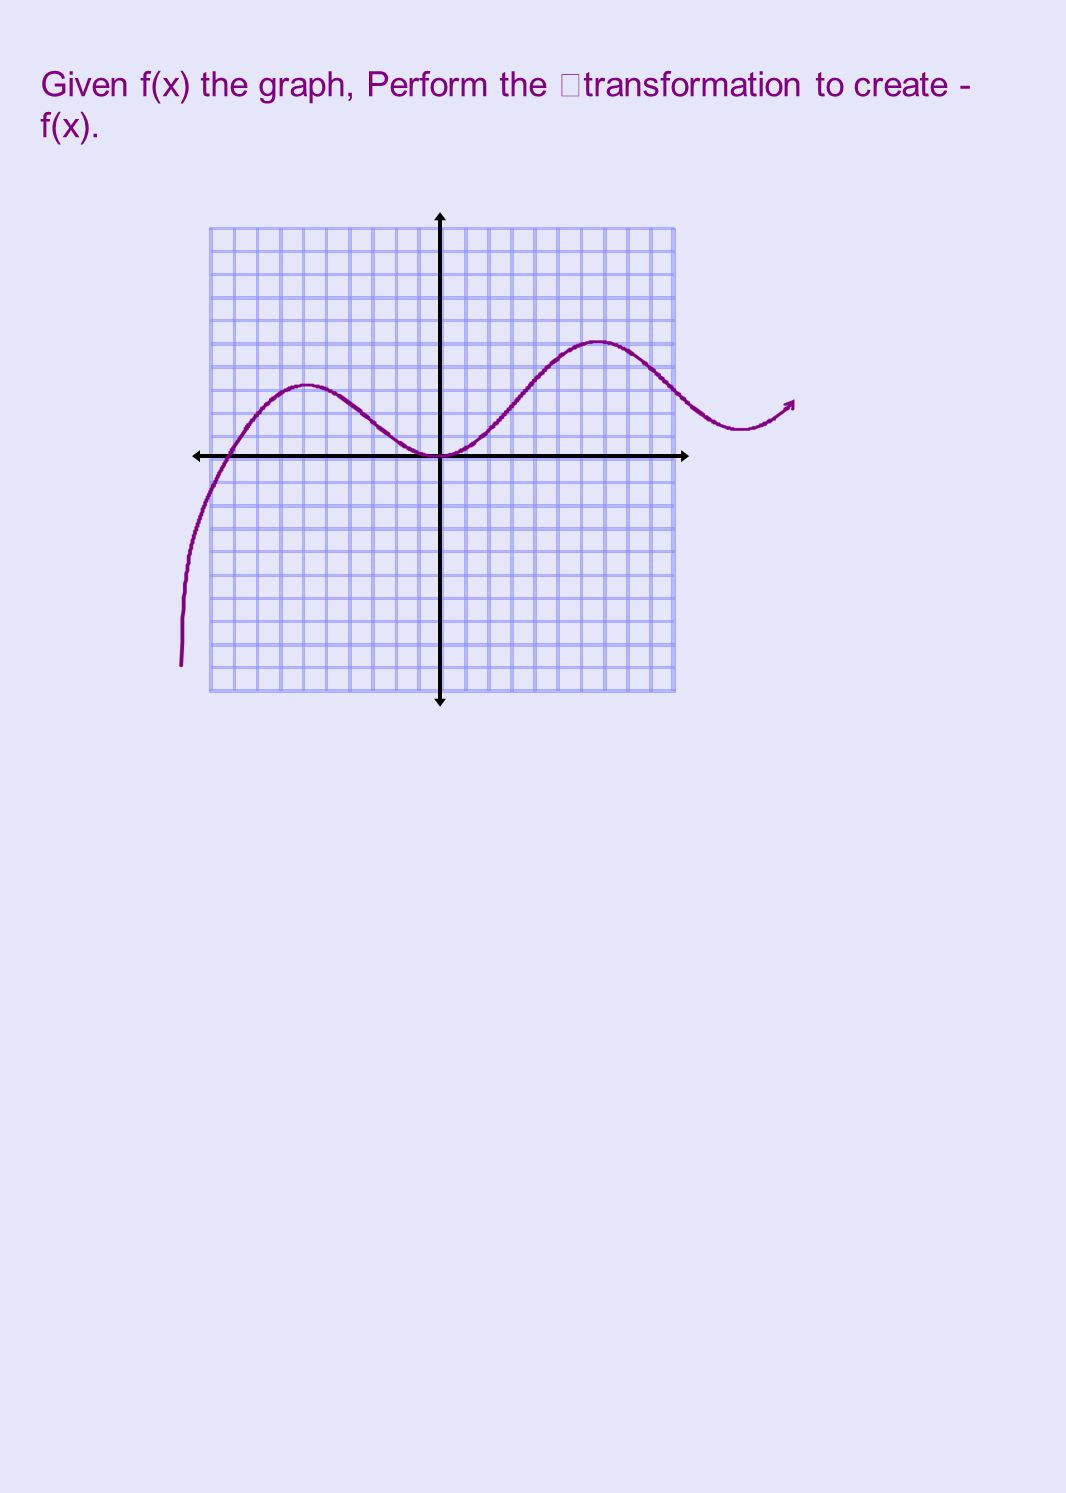 Given f(x) the graph, Perform the transformation to create -f(x).